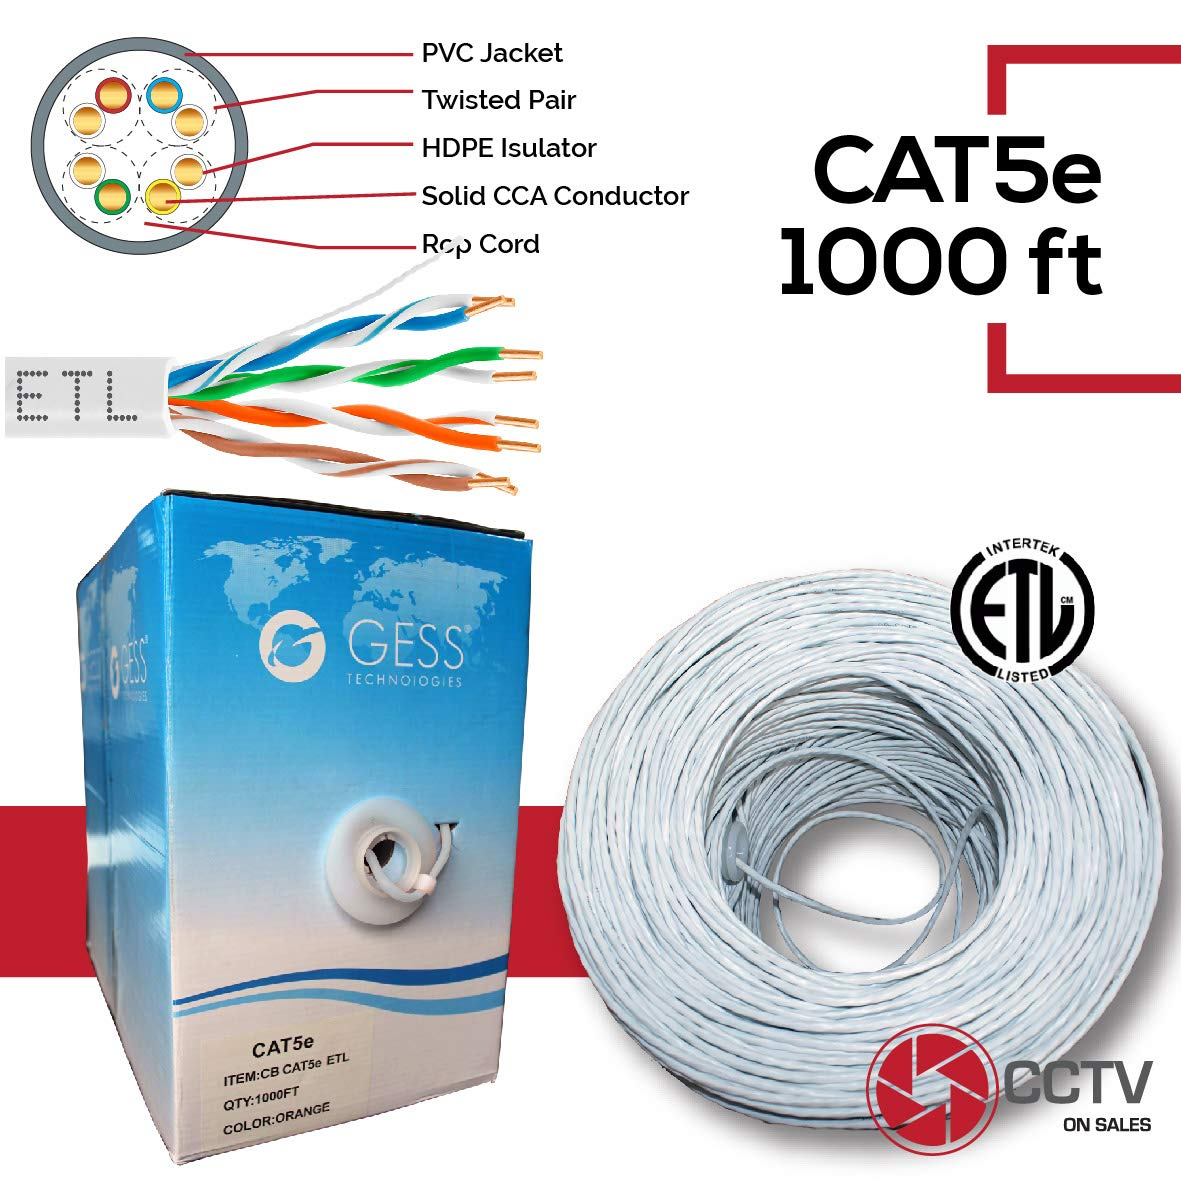 Cat5e 1000FT Ethernet UTP Cable Network 24AWG RJ45 Solid CCA CMR Rated in-Wall Installations Pass Fluke 230FT Test Pull Box White ETL Listed